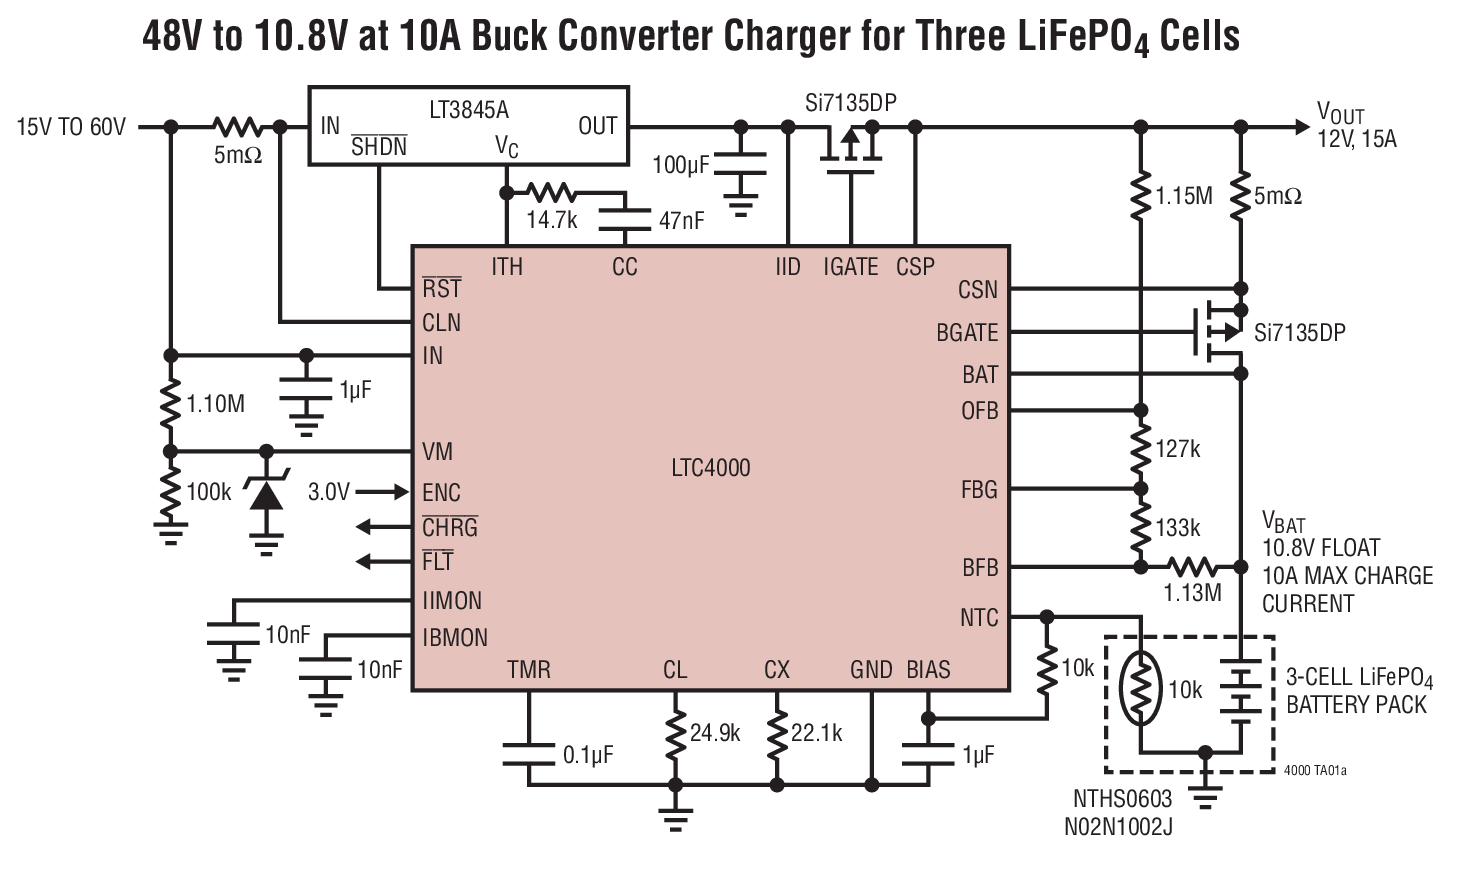 Ltc4000 High Voltage Current Controller For Battery Charging Solar Charger Circuit Diagram Applications Power Systems